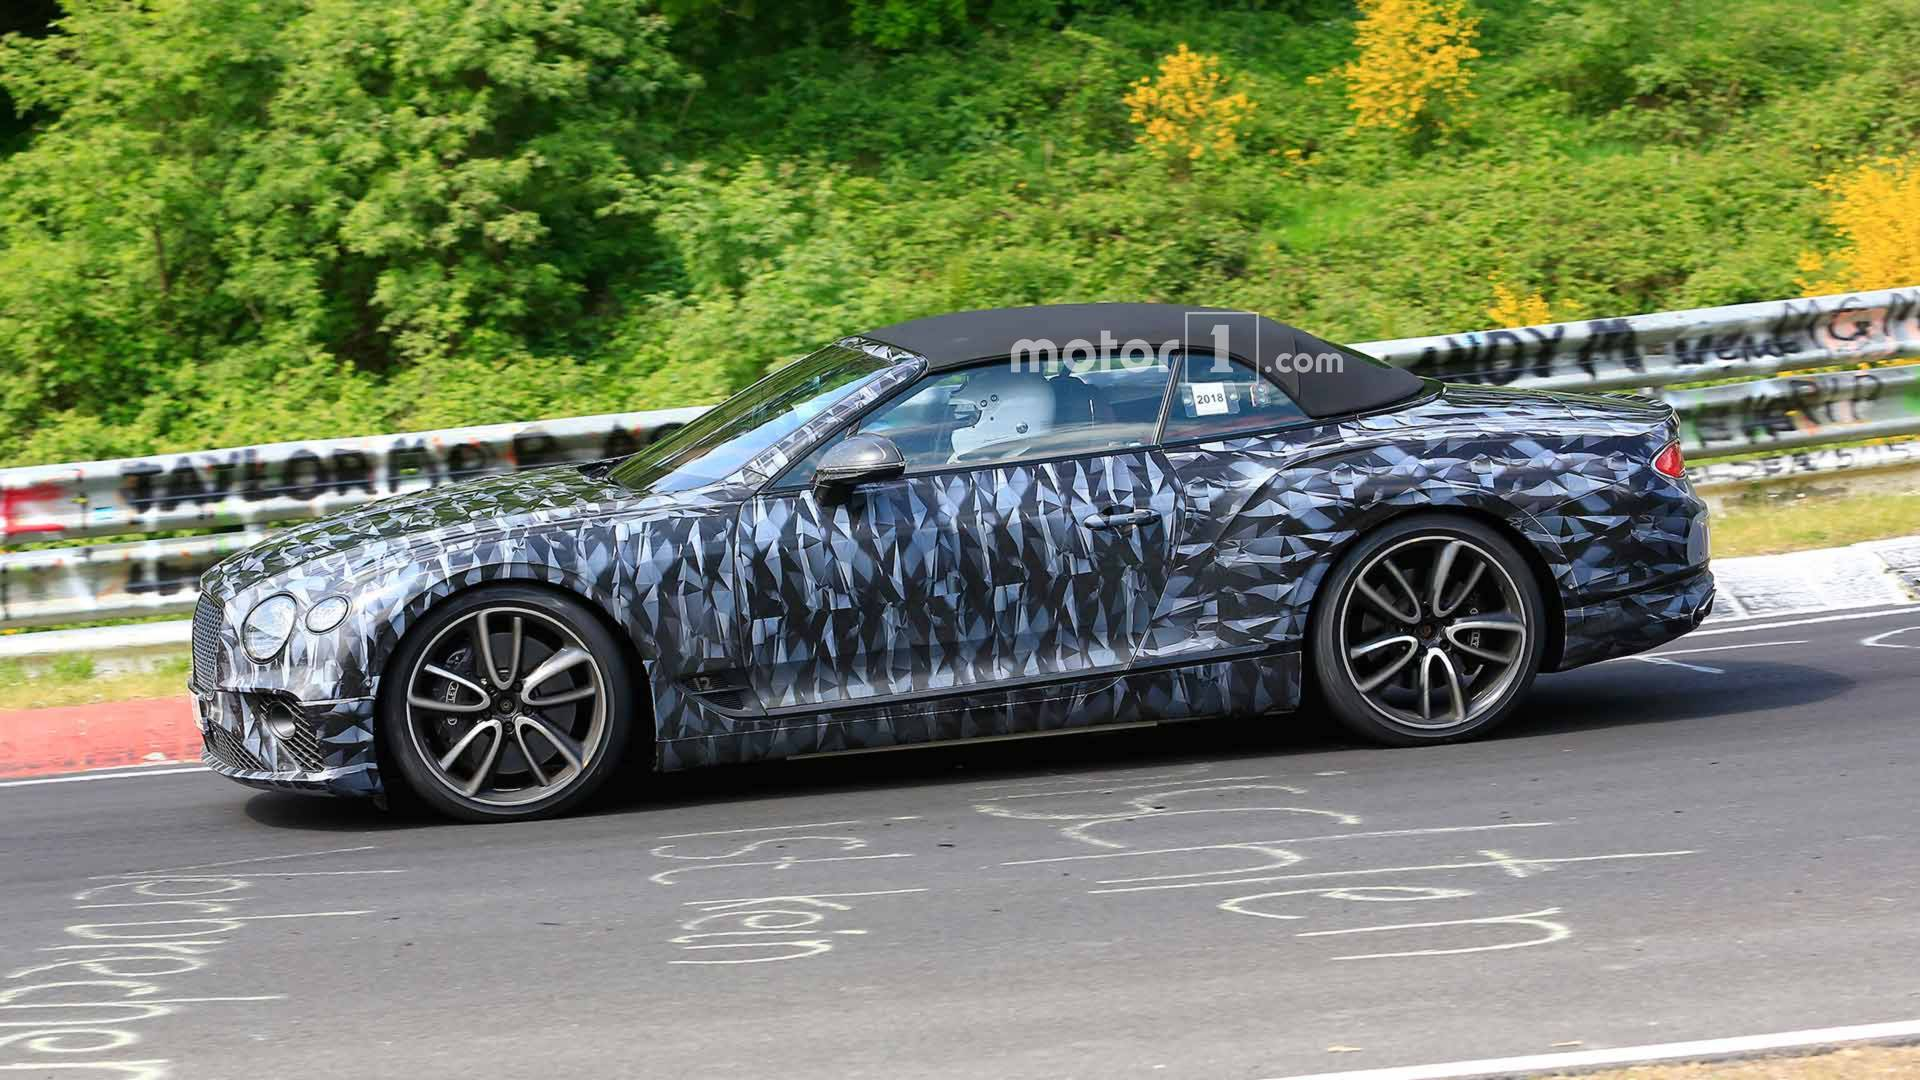 2017 - [Bentley] Continental GT - Page 6 Bentley-continental-gtc-spy-shots